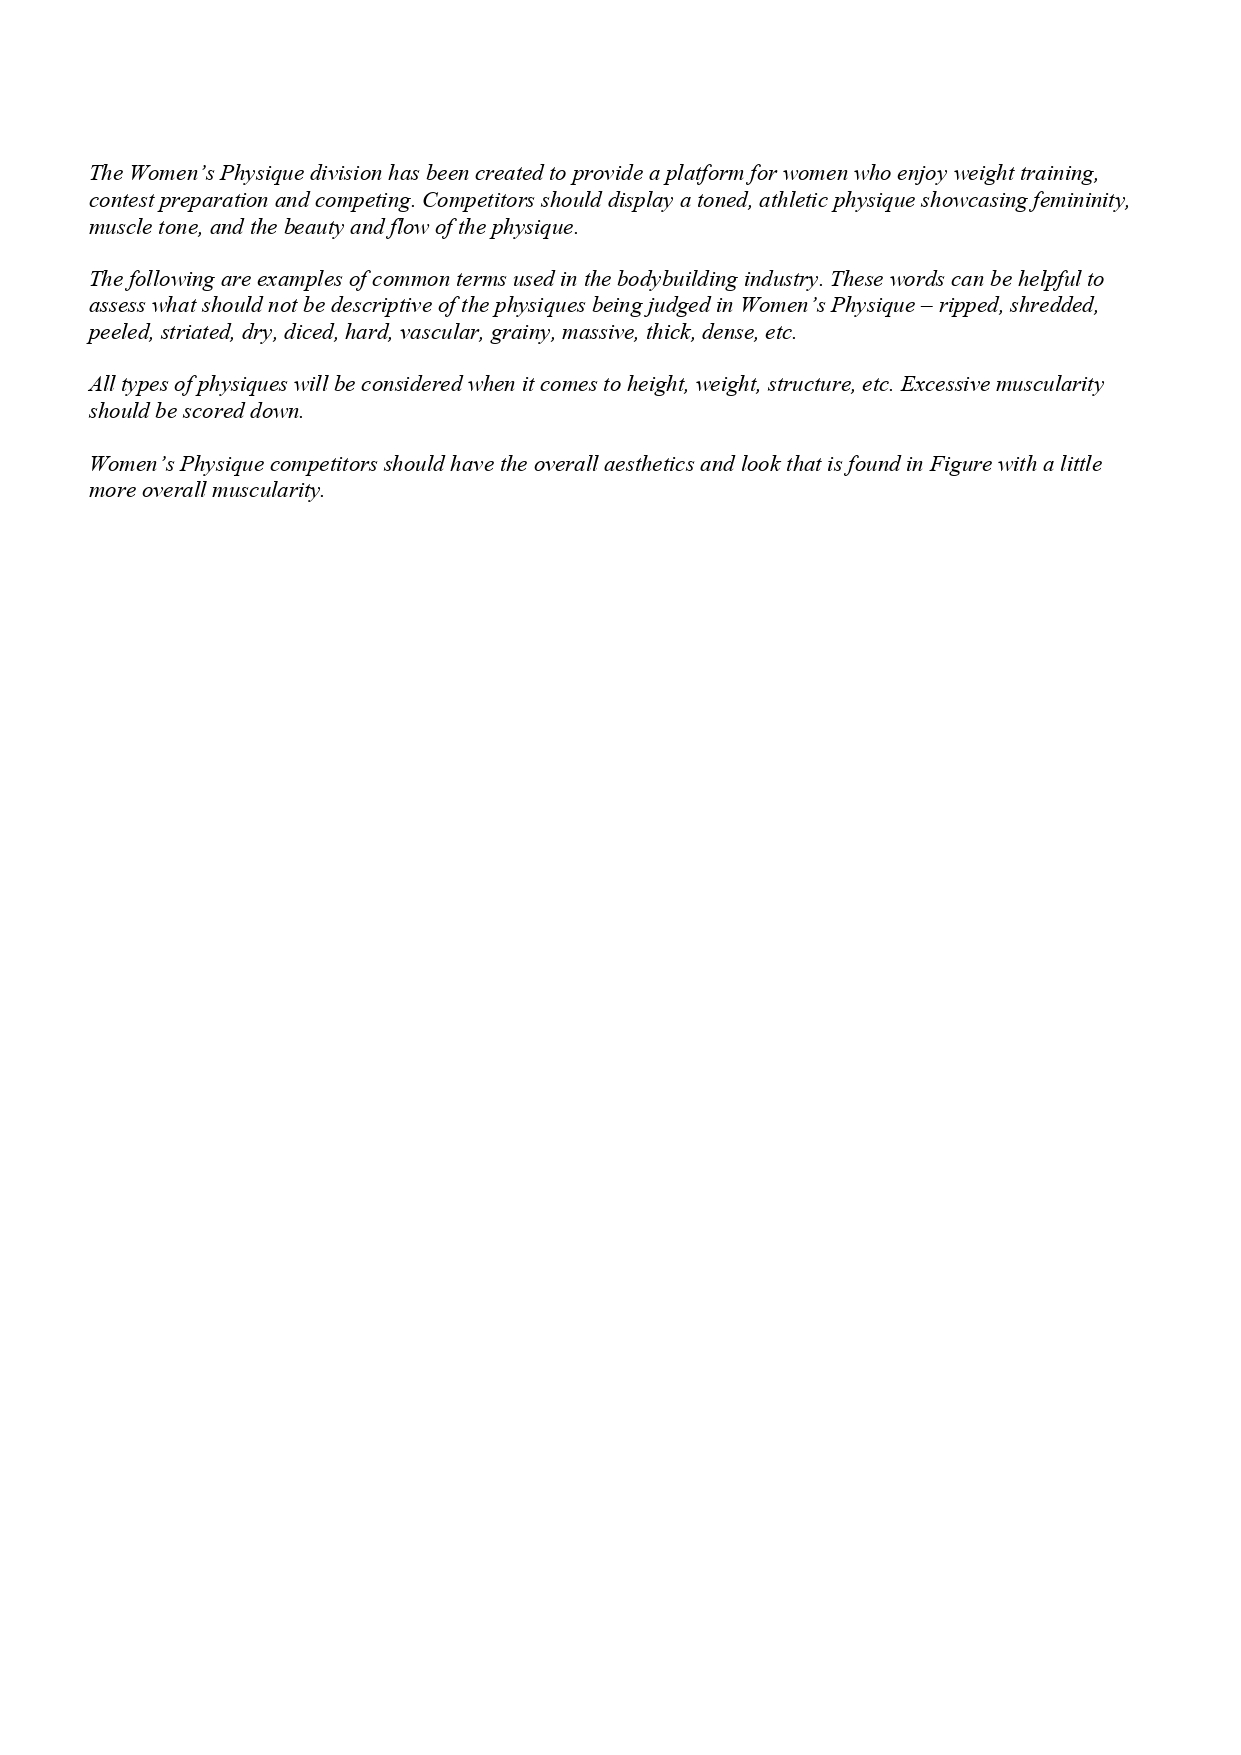 IFBB-rules_page-0017